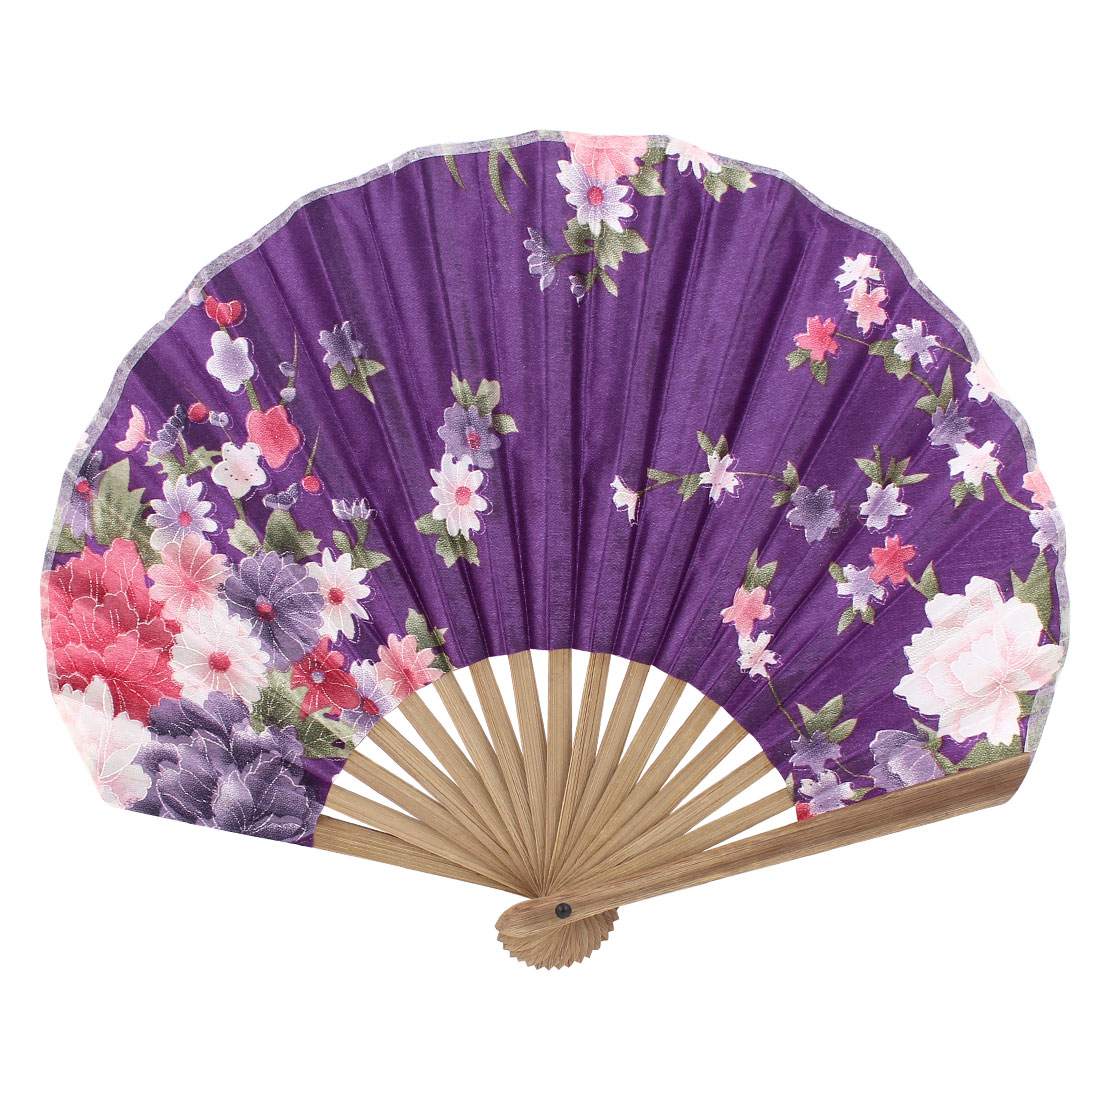 Party Decor Bamboo Frame Fabric Blooming Flower Pattern Folding Hand Fan Purple